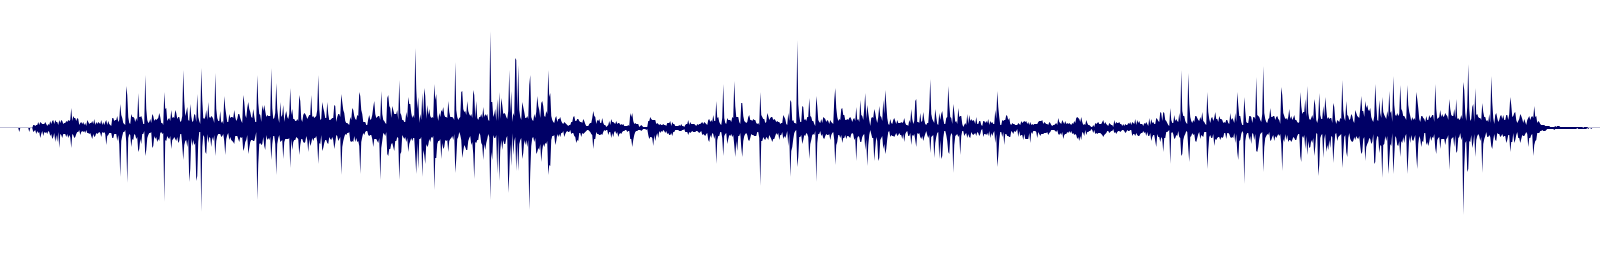 waveform of track #105519